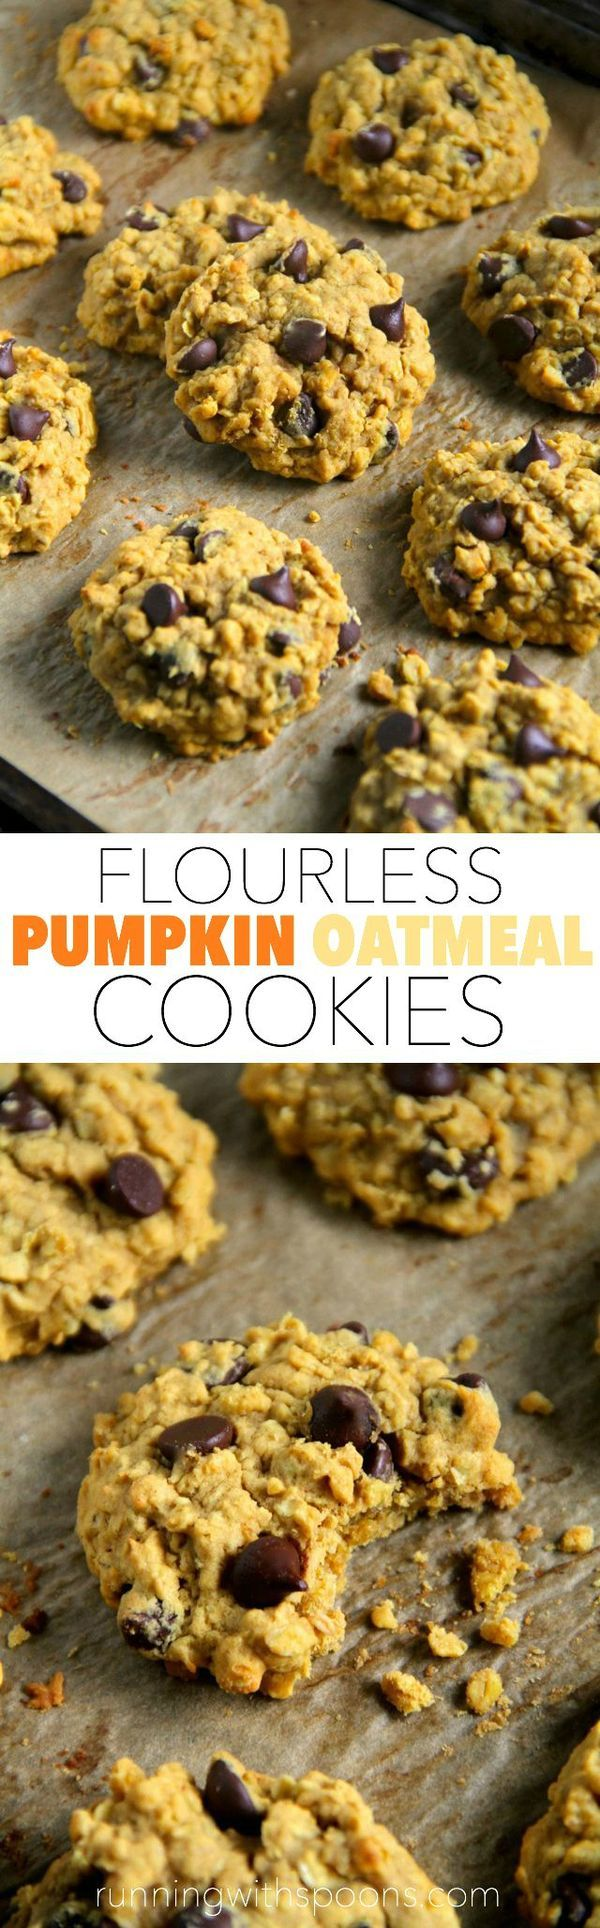 Flourless Pumpkin Oatmeal Cookies -- made without butter or flour, but so soft and chewy that you'd never be able to tell! || runningwithspoons.com #pumpkin #cookies #vegan #fall